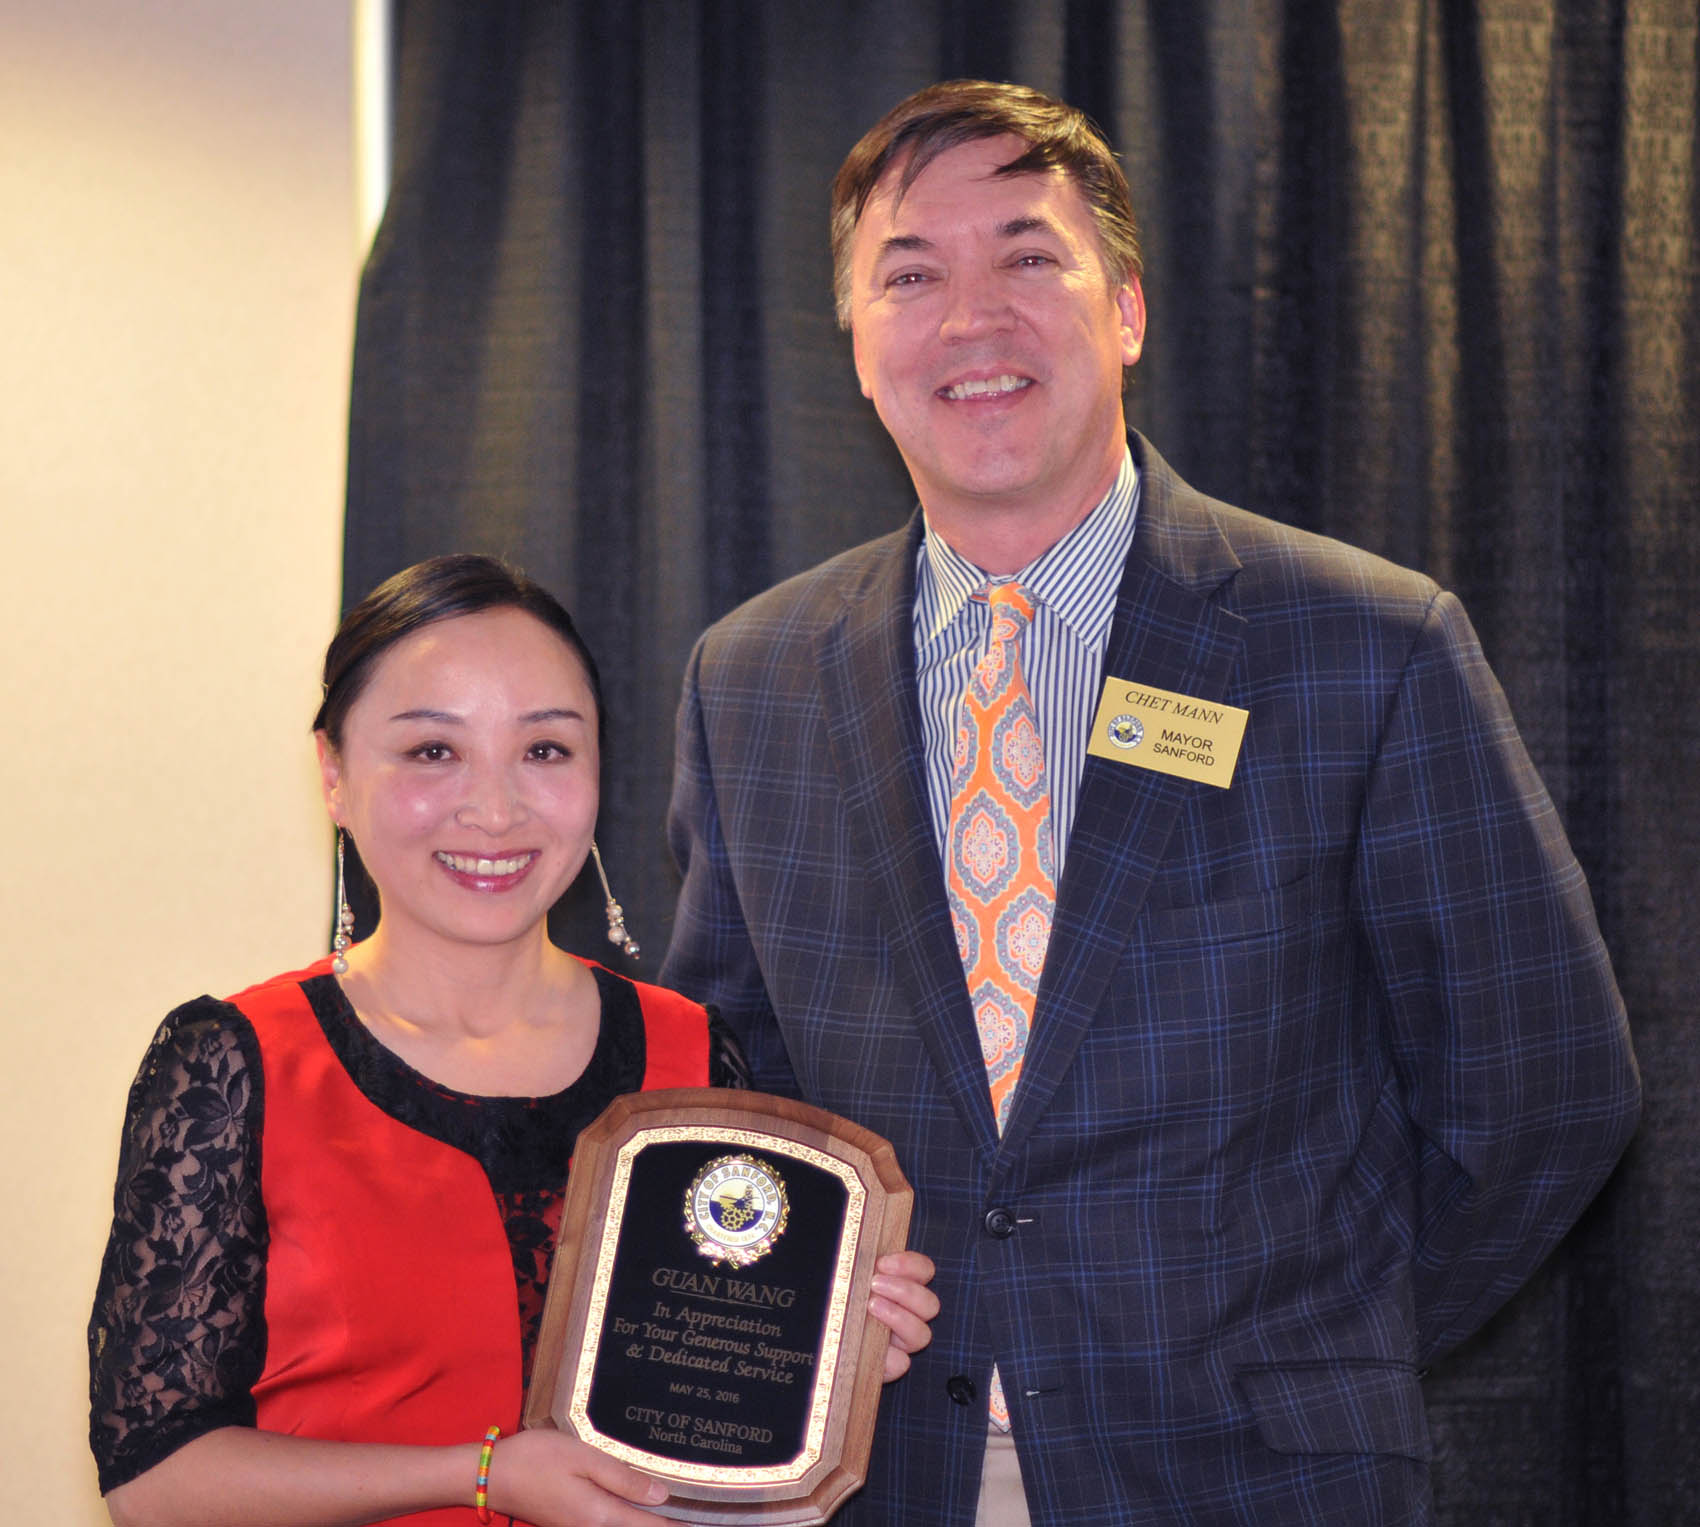 Click to enlarge,  Guan Wang, Central Carolina Community College Confucius Classroom Instructor, receives a plaque from Sanford Mayor Chet Mann expressing the City of Sanford's appreciation of her generous support and dedicated service during her three years at the college.